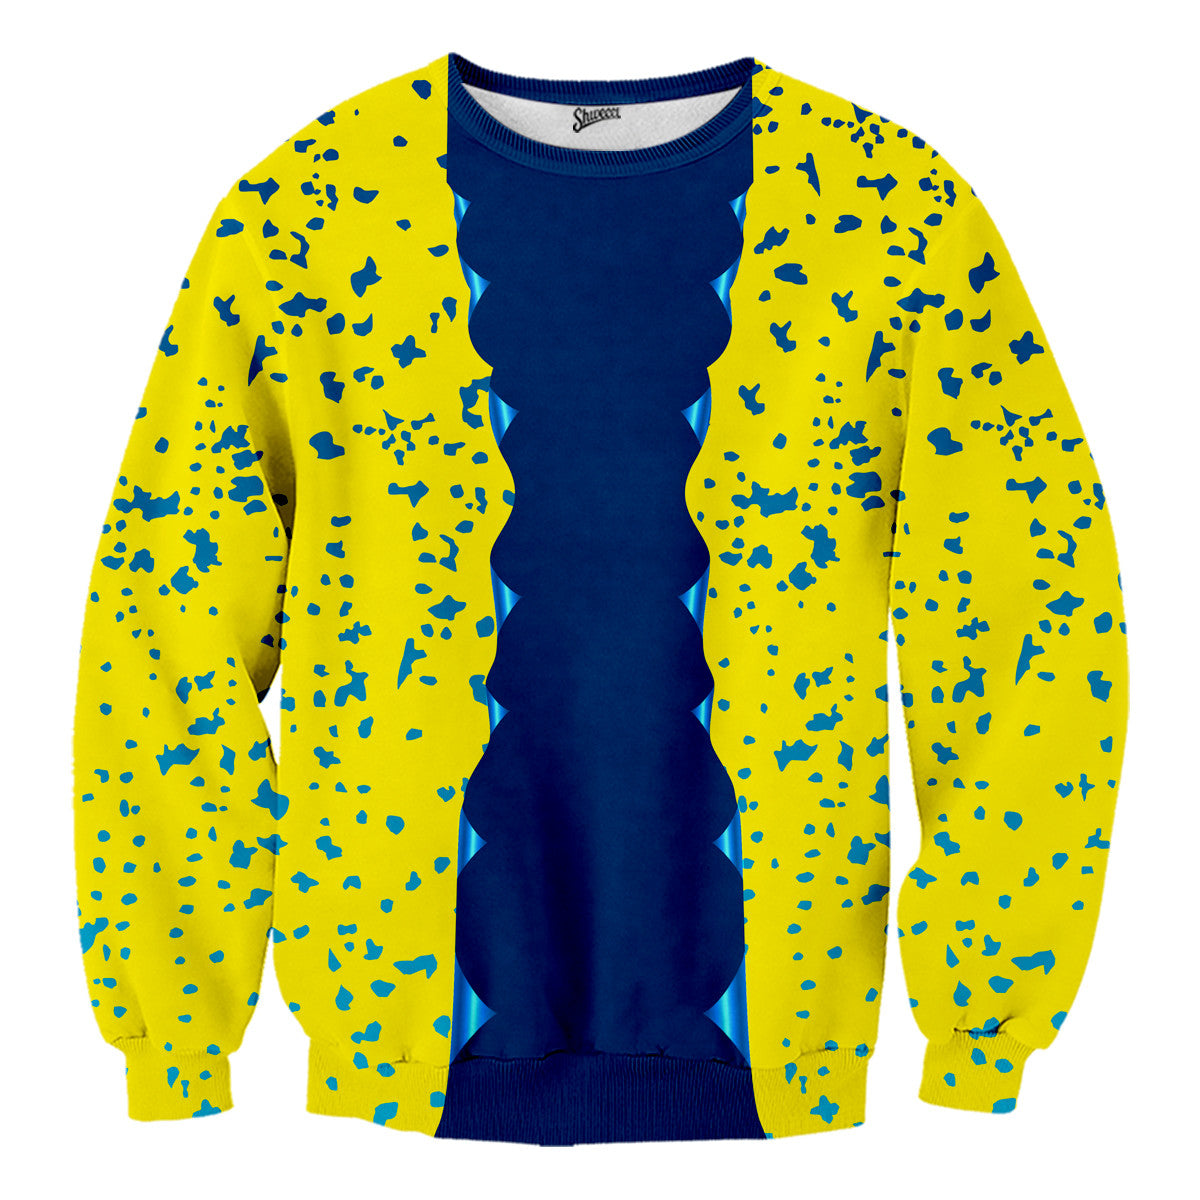 Mahi Fish Skin Sweater - Shweeet